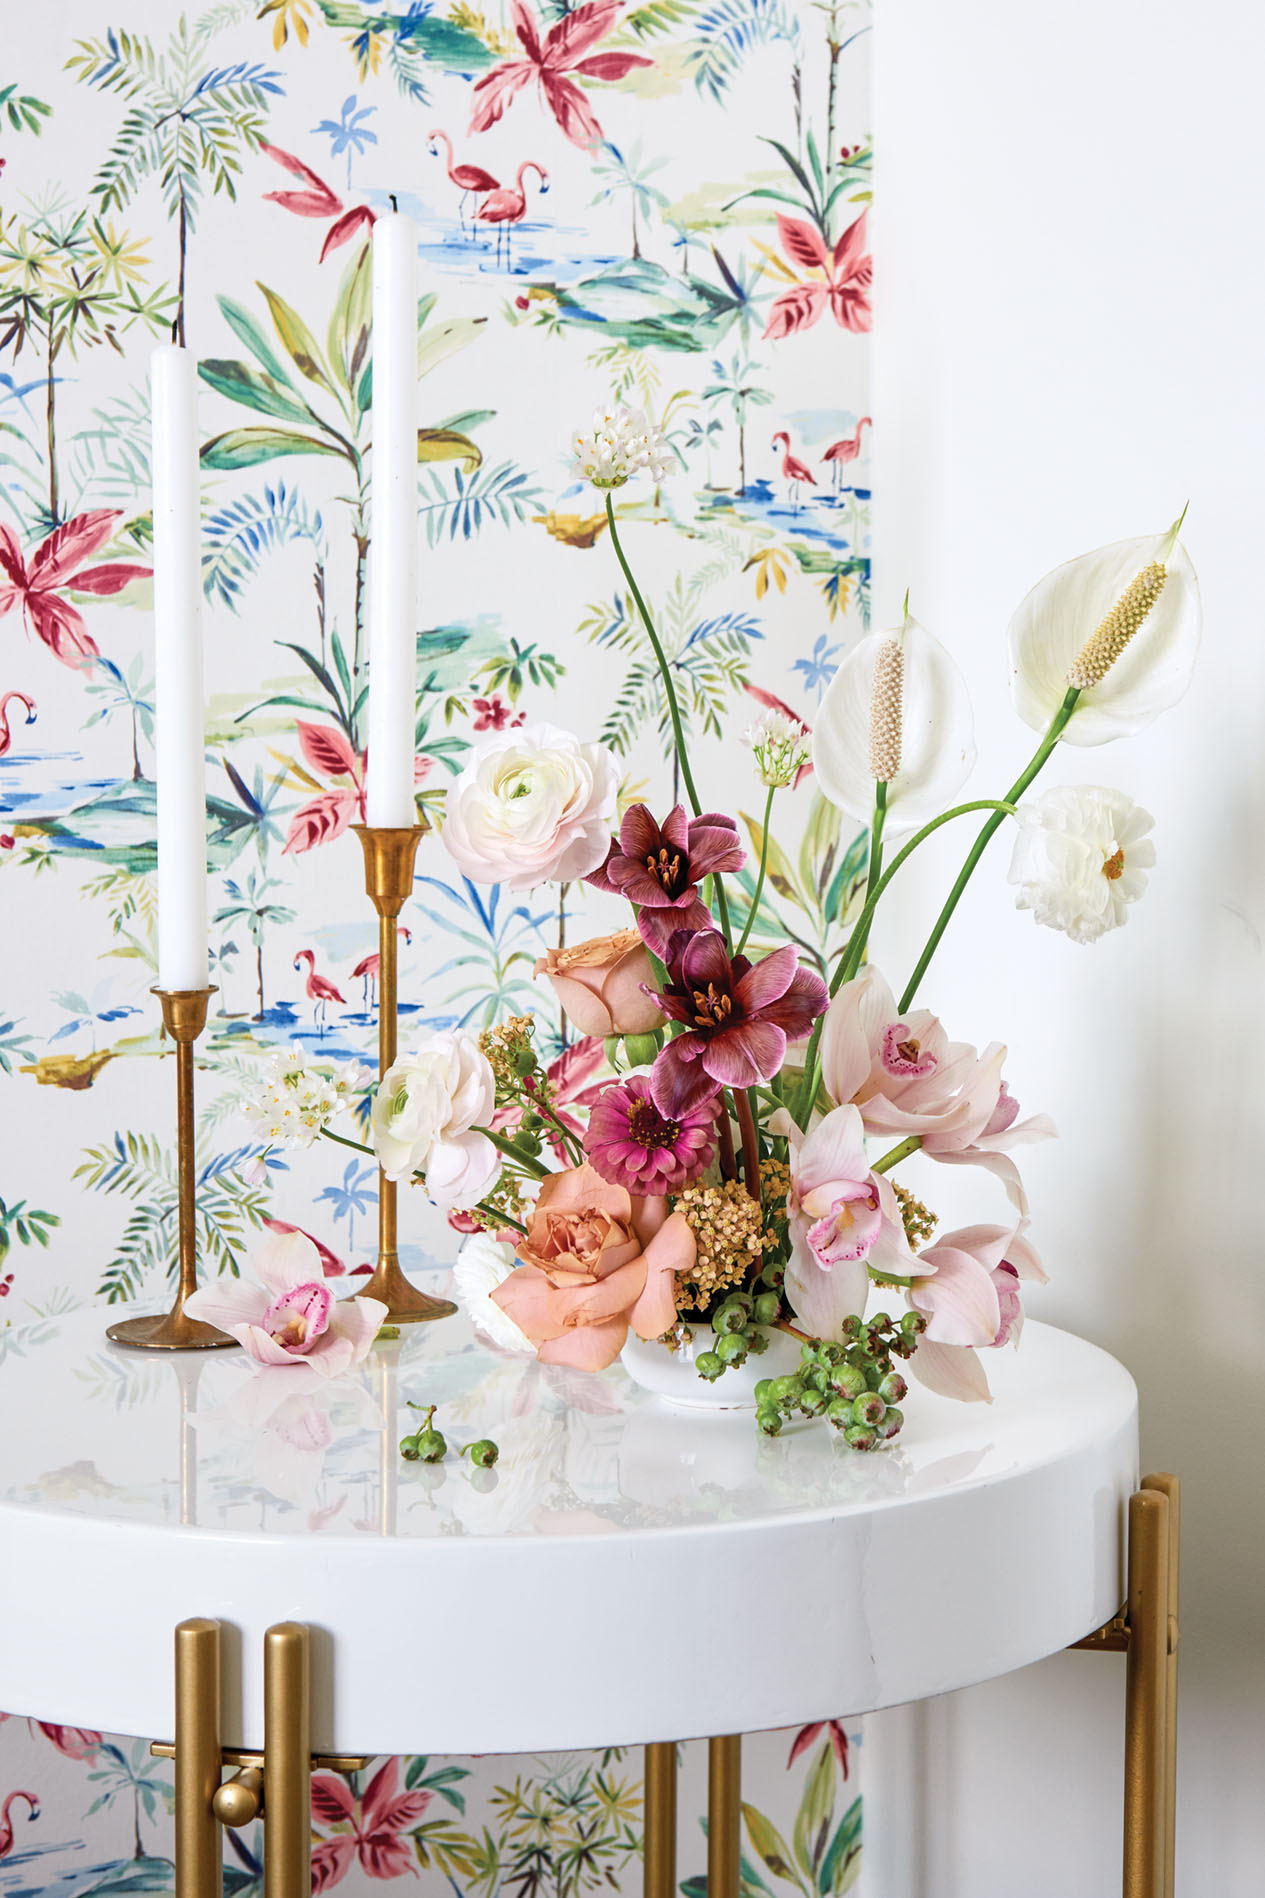 An ikebana arrangement and a pair of simple brass candlesticks with white tapers sit on a modern, white, circular occasional table with brass legs. A panel of floral fabric hangs in the background